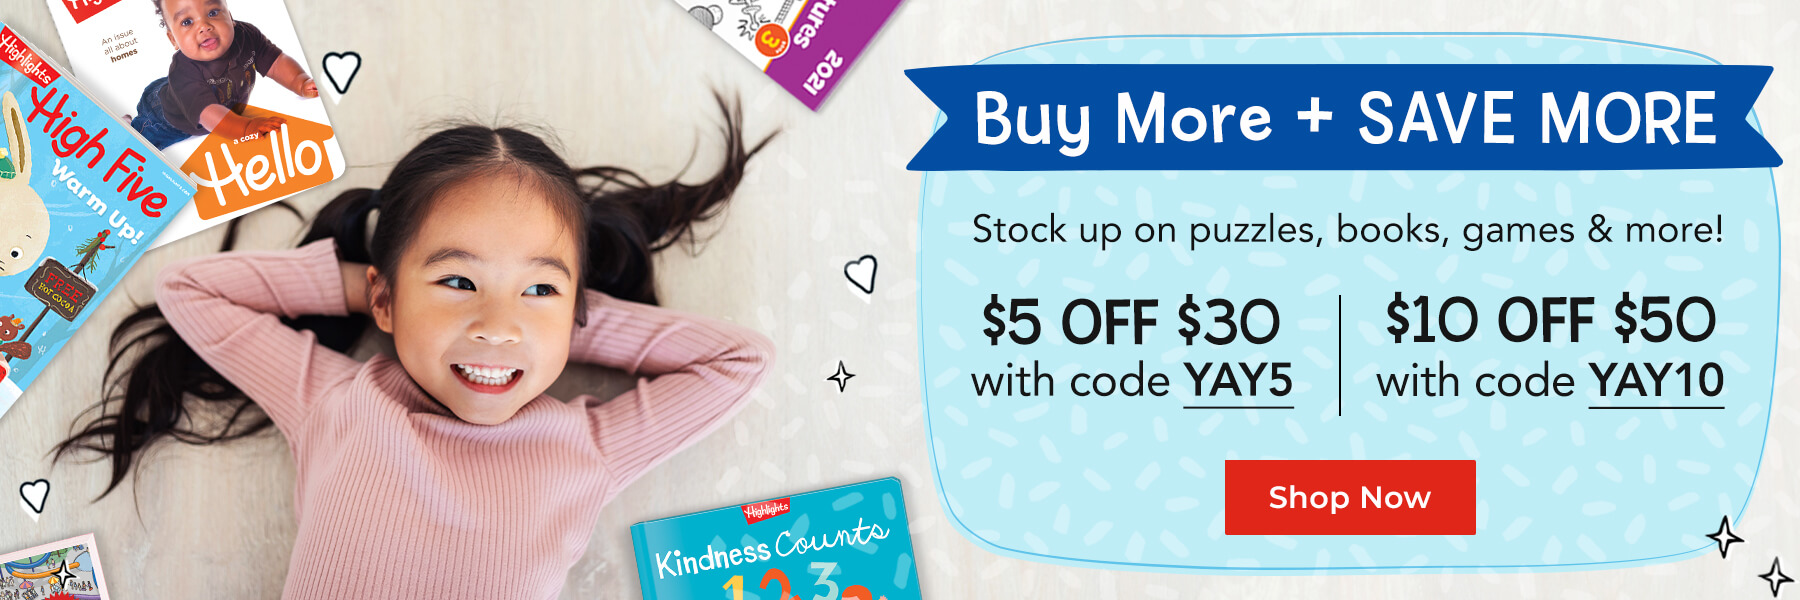 Buy more and save more with codes YAY5 for $5 off $30 and YAY10 for $10 off $50.